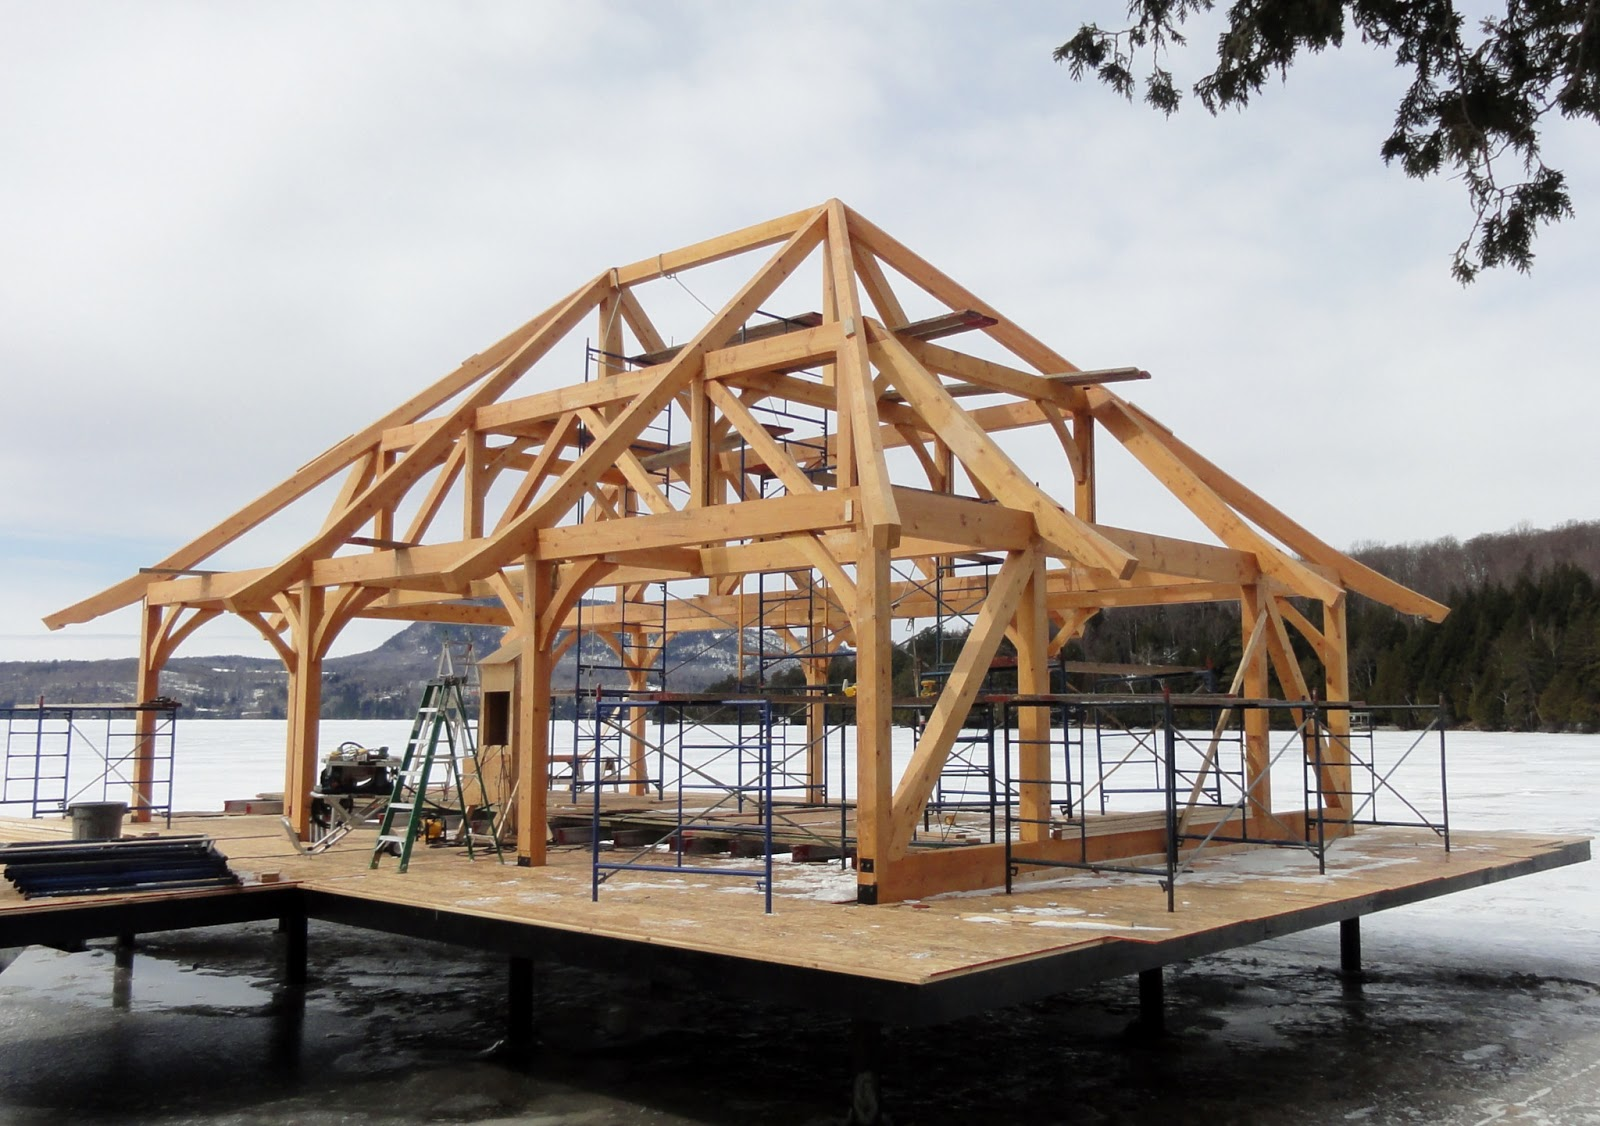 Timber frame design pretty boat house for Timber frame designs